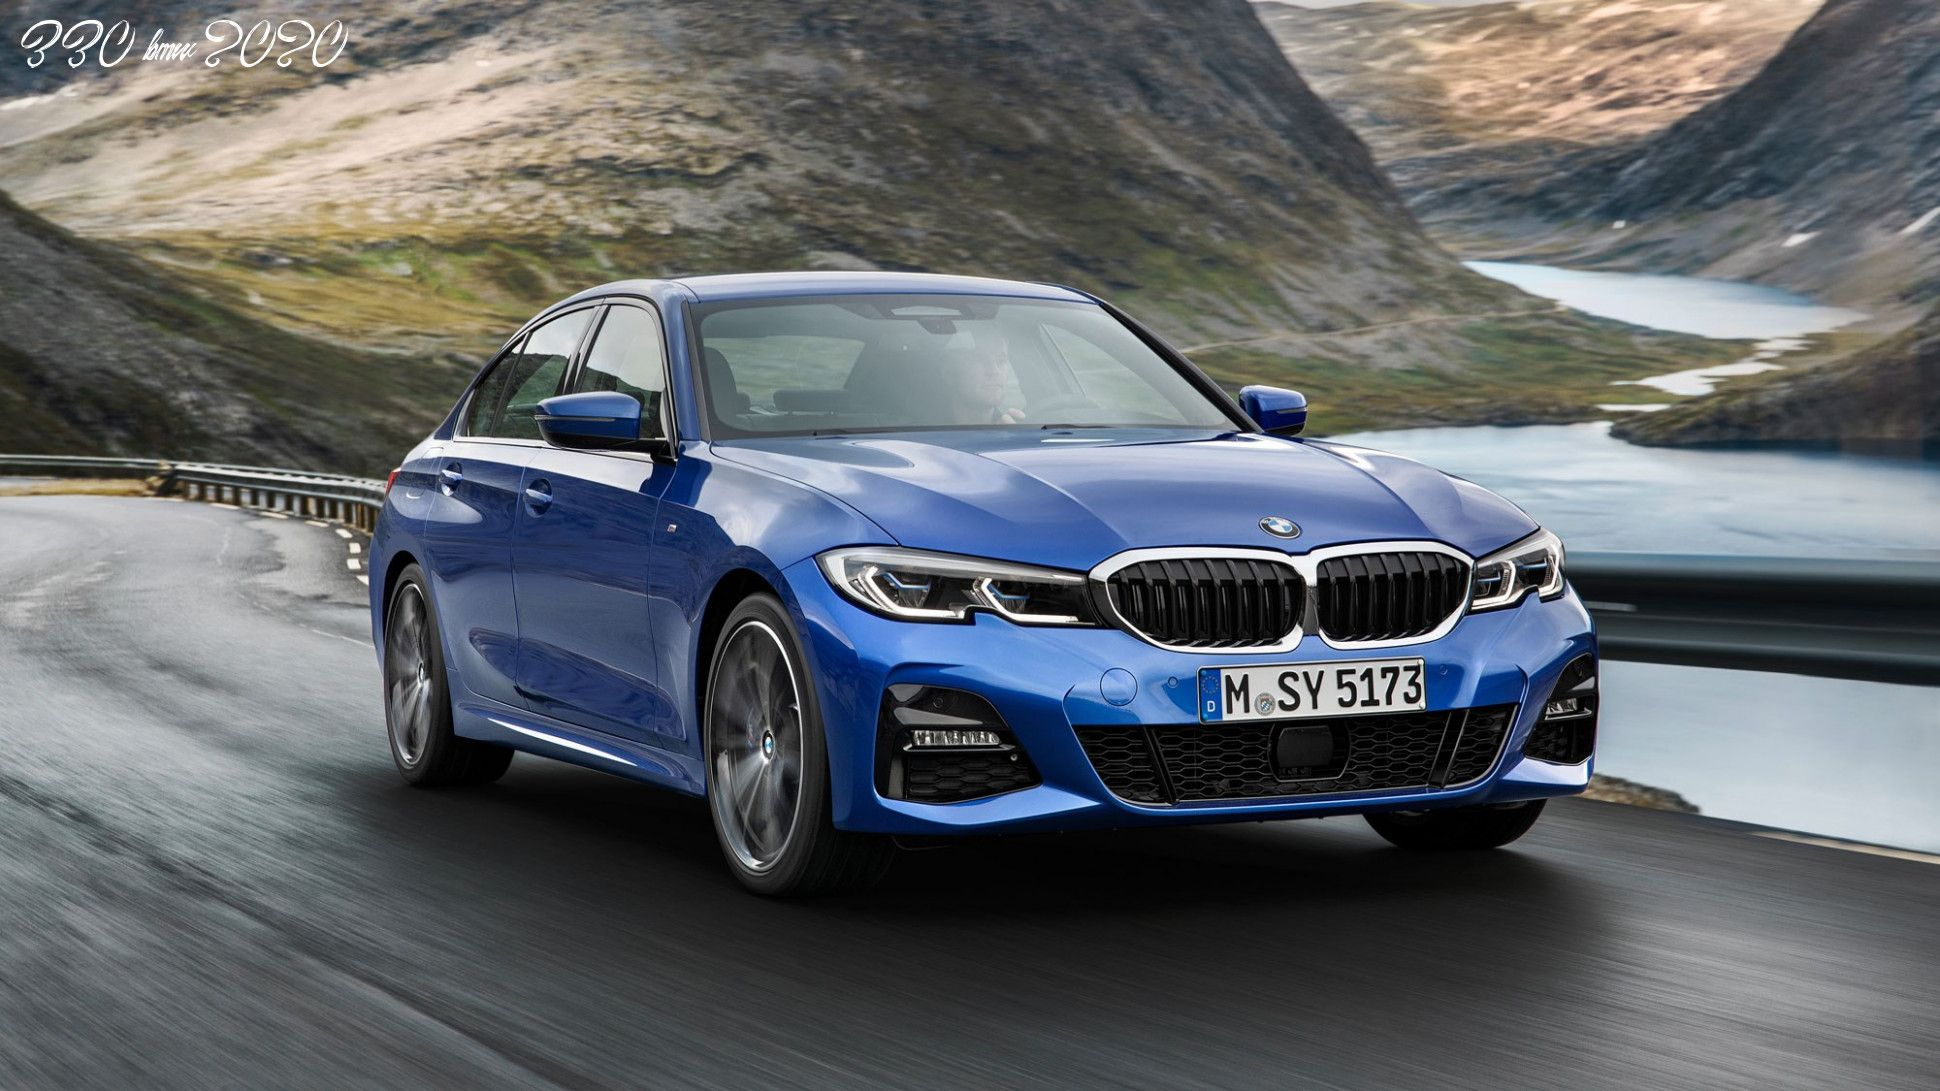 330 Bmw 2020 In 2020 New Bmw Bmw 3 Series New Bmw 3 Series